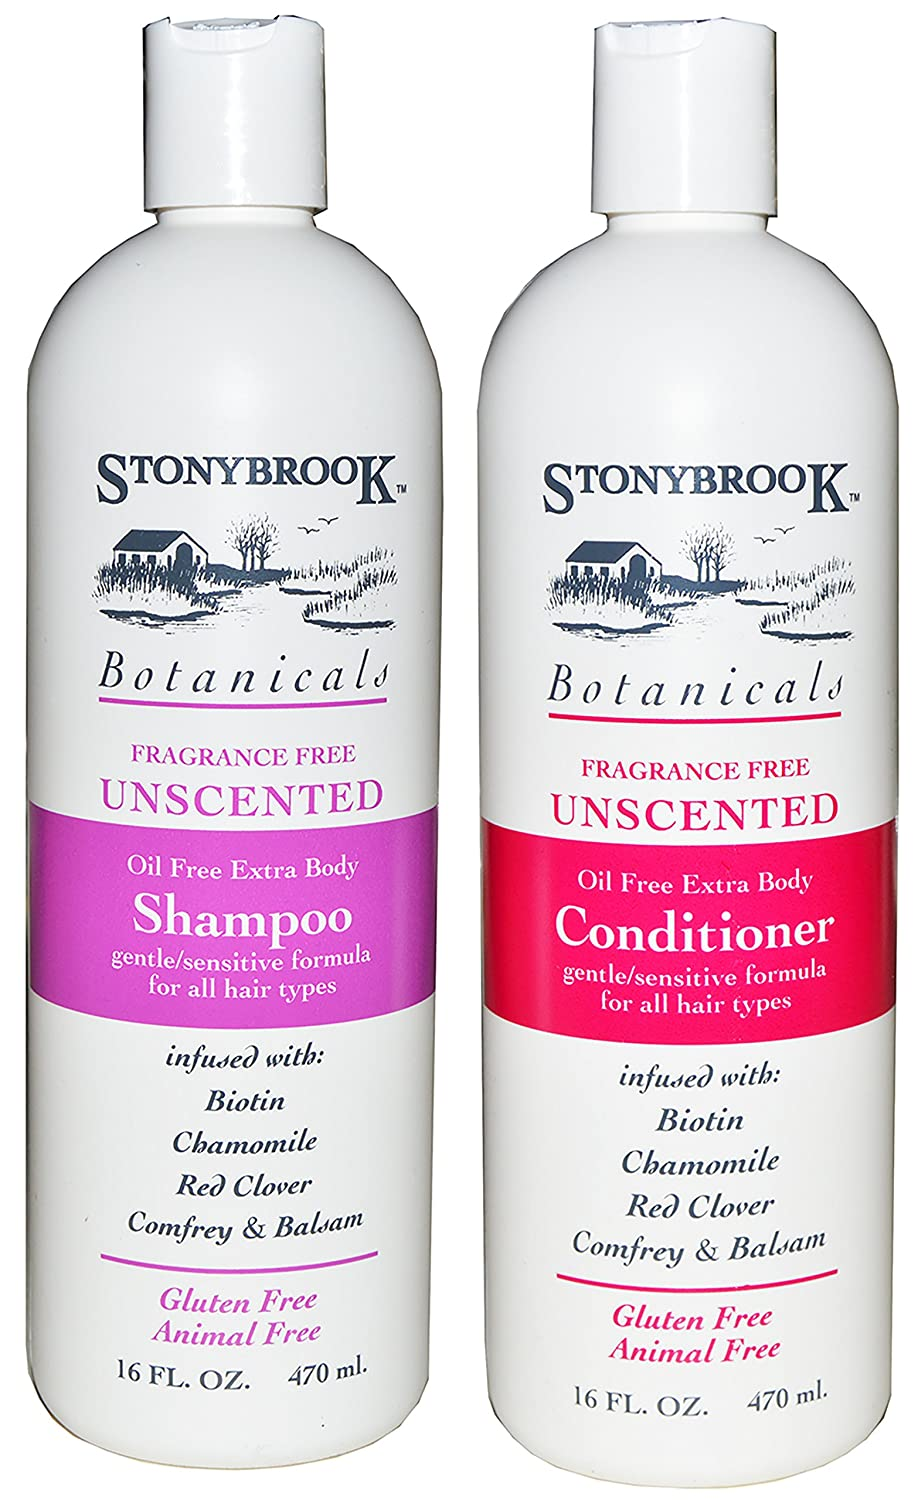 Stonybrook Botanicals Fragrance Free Unscented Shampoo and Conditioner Set